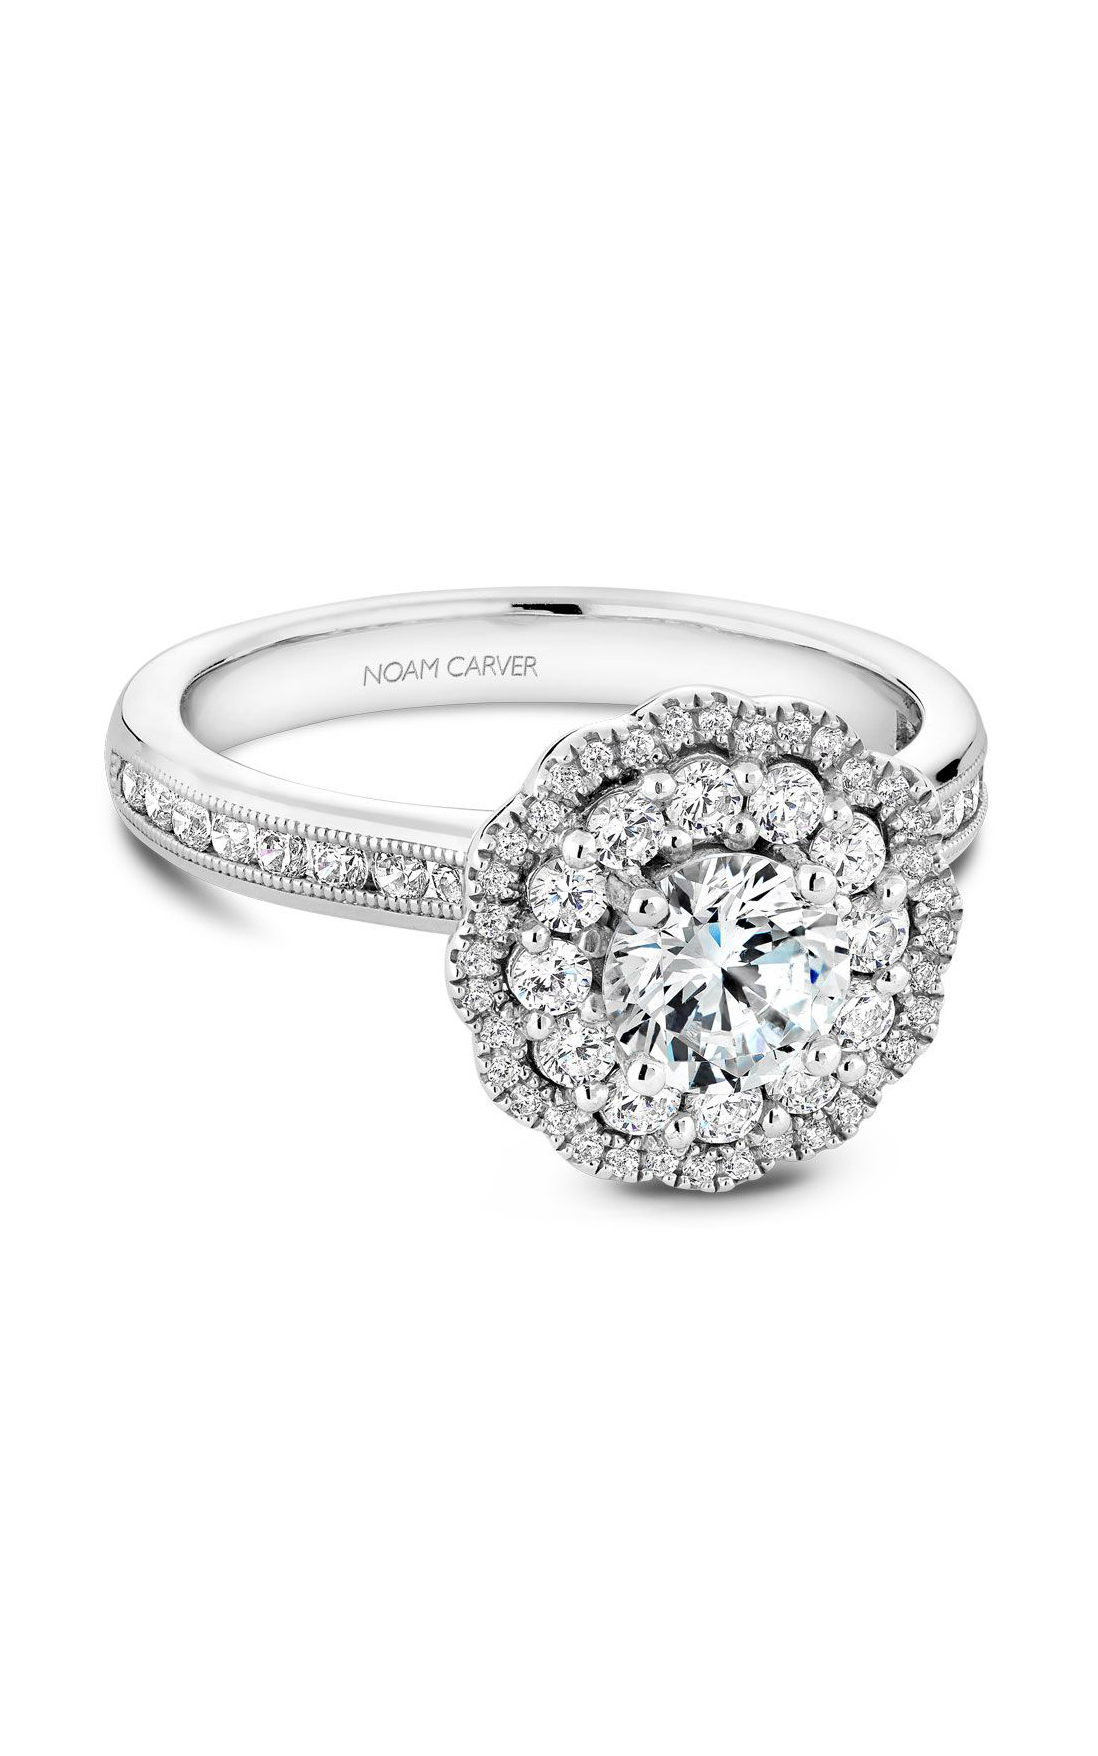 Noam Carver Classic Engagement Ring B145-16A product image